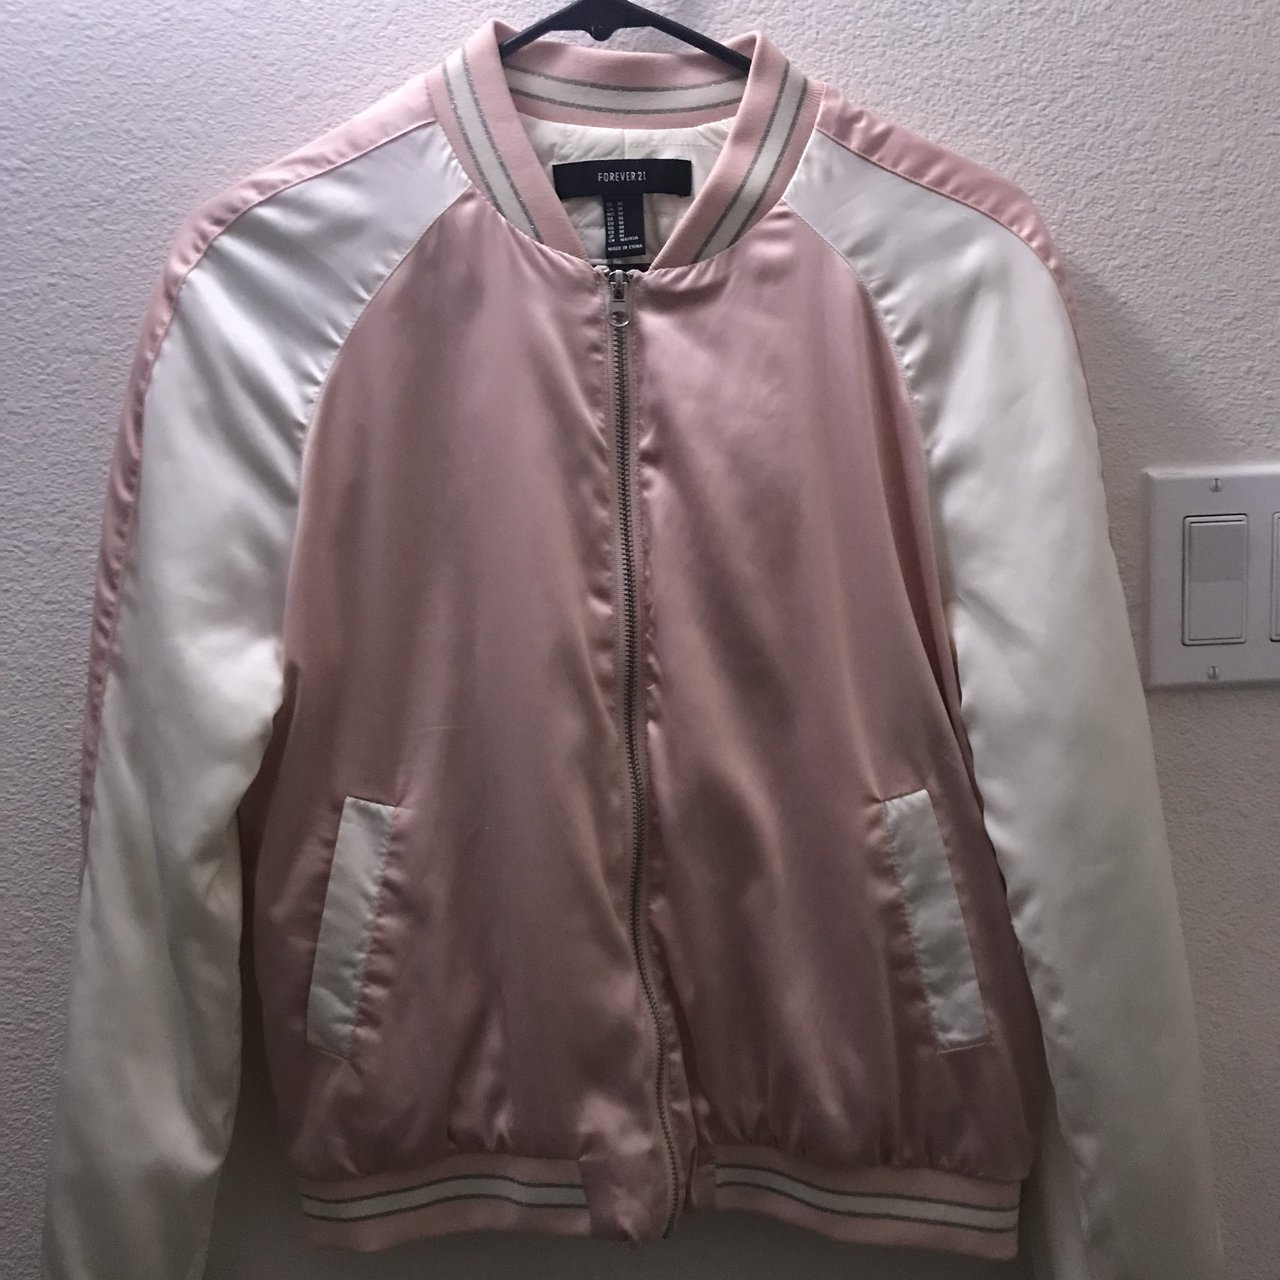 e3daa918a655 pink   white bomber jacket. worn once  PERFECT condition. - Depop